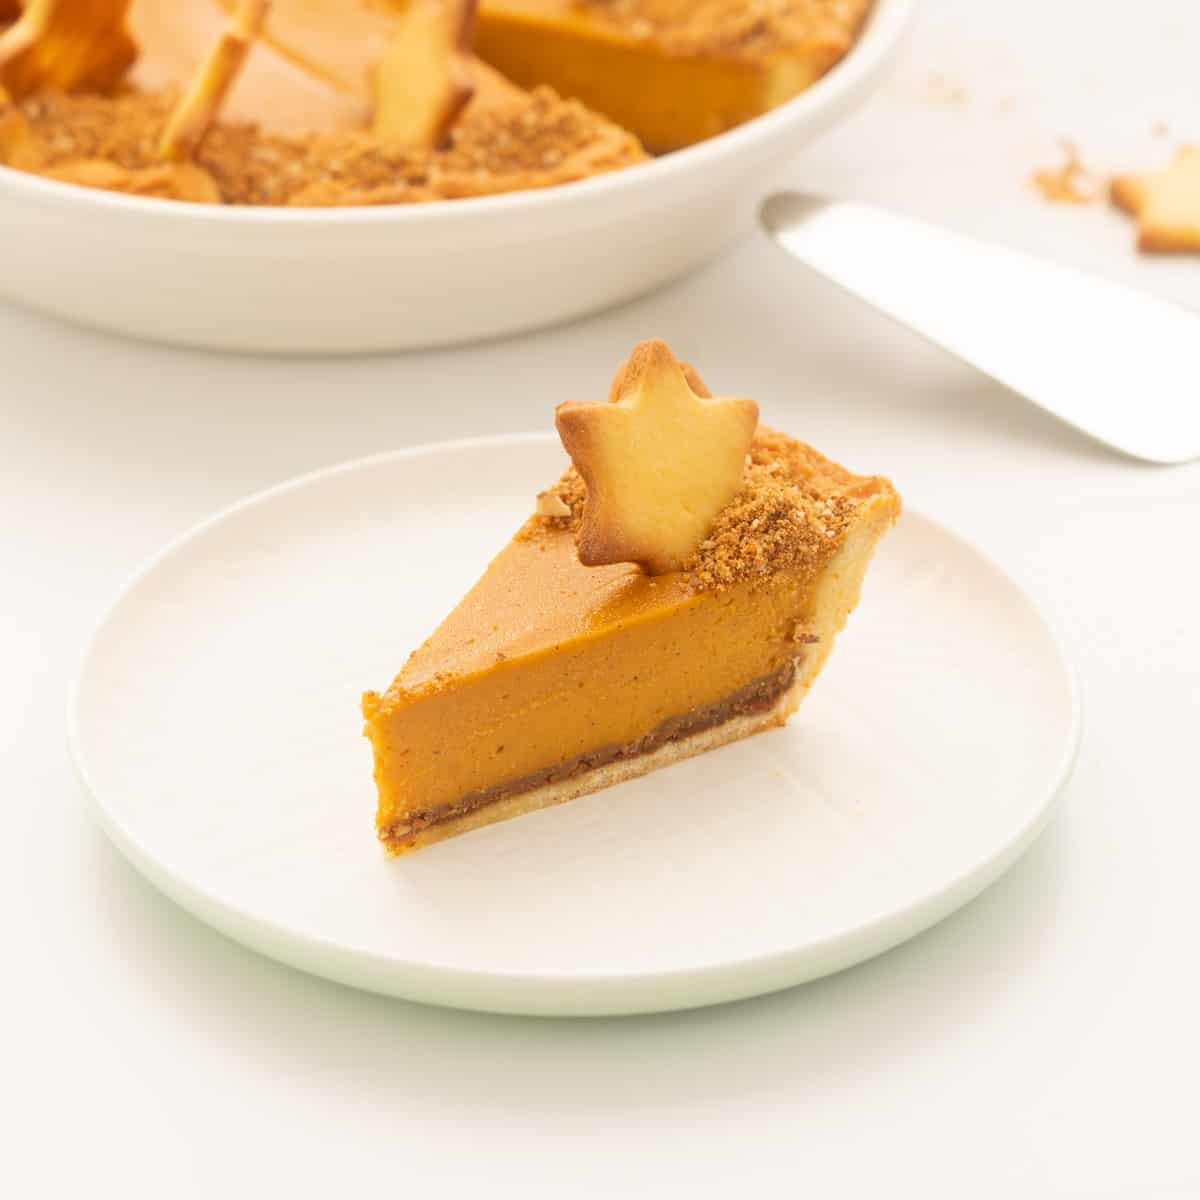 A slice of sweet potato pie decporated with a pastry star on a white plate.